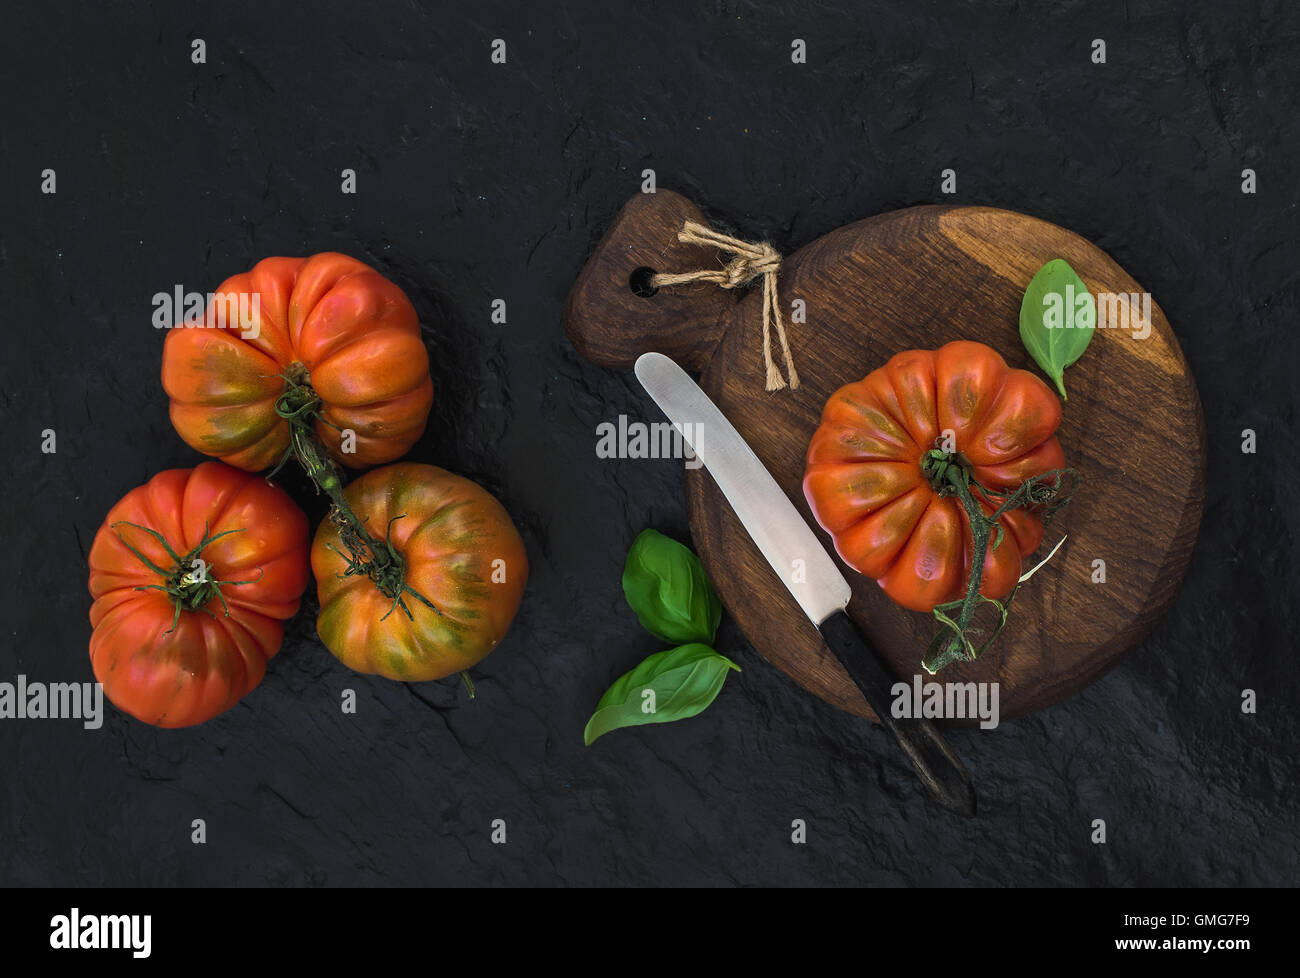 Fresh ripe hairloom tomatoes and basil leaves on rustic wooden board - Stock Image